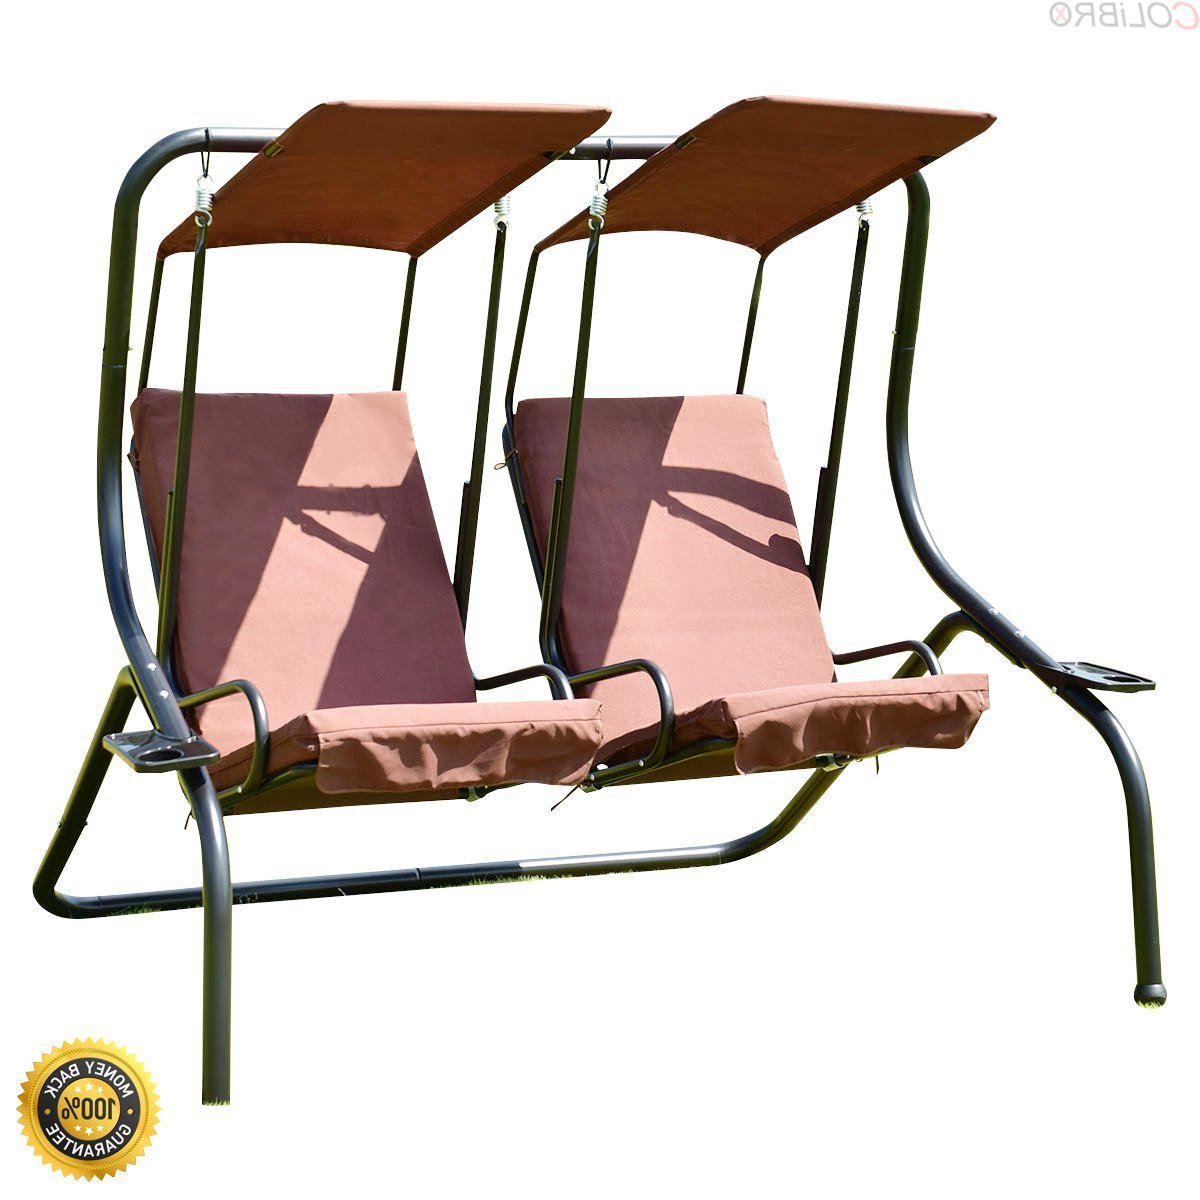 The Best Patio Loveseat Canopy Hammock Porch Swings With Stand